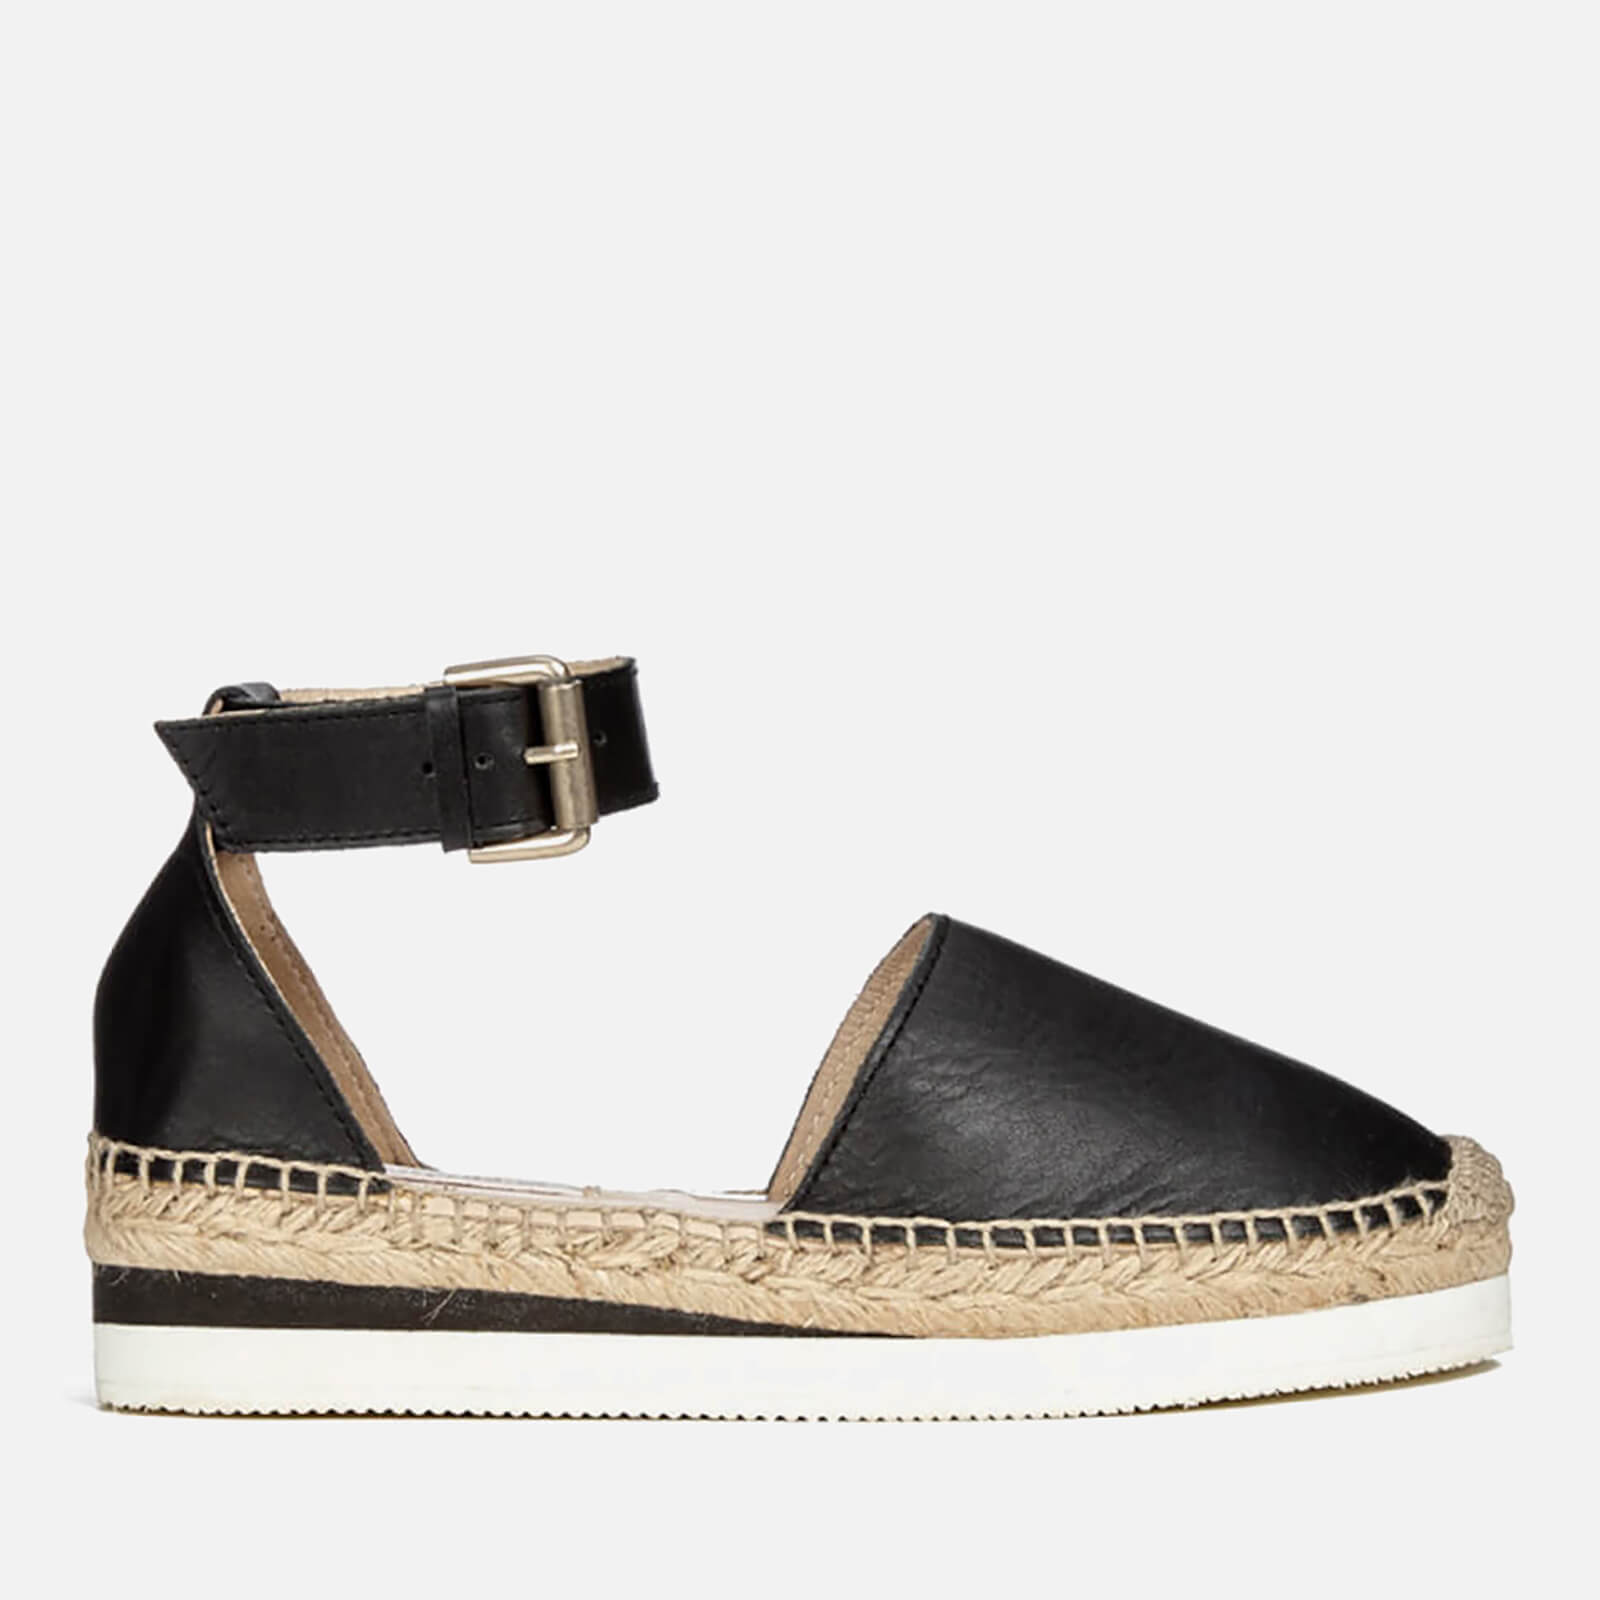 7fb72fb8603 See By Chloé Women s Leather Espadrille Flat Sandals - Black